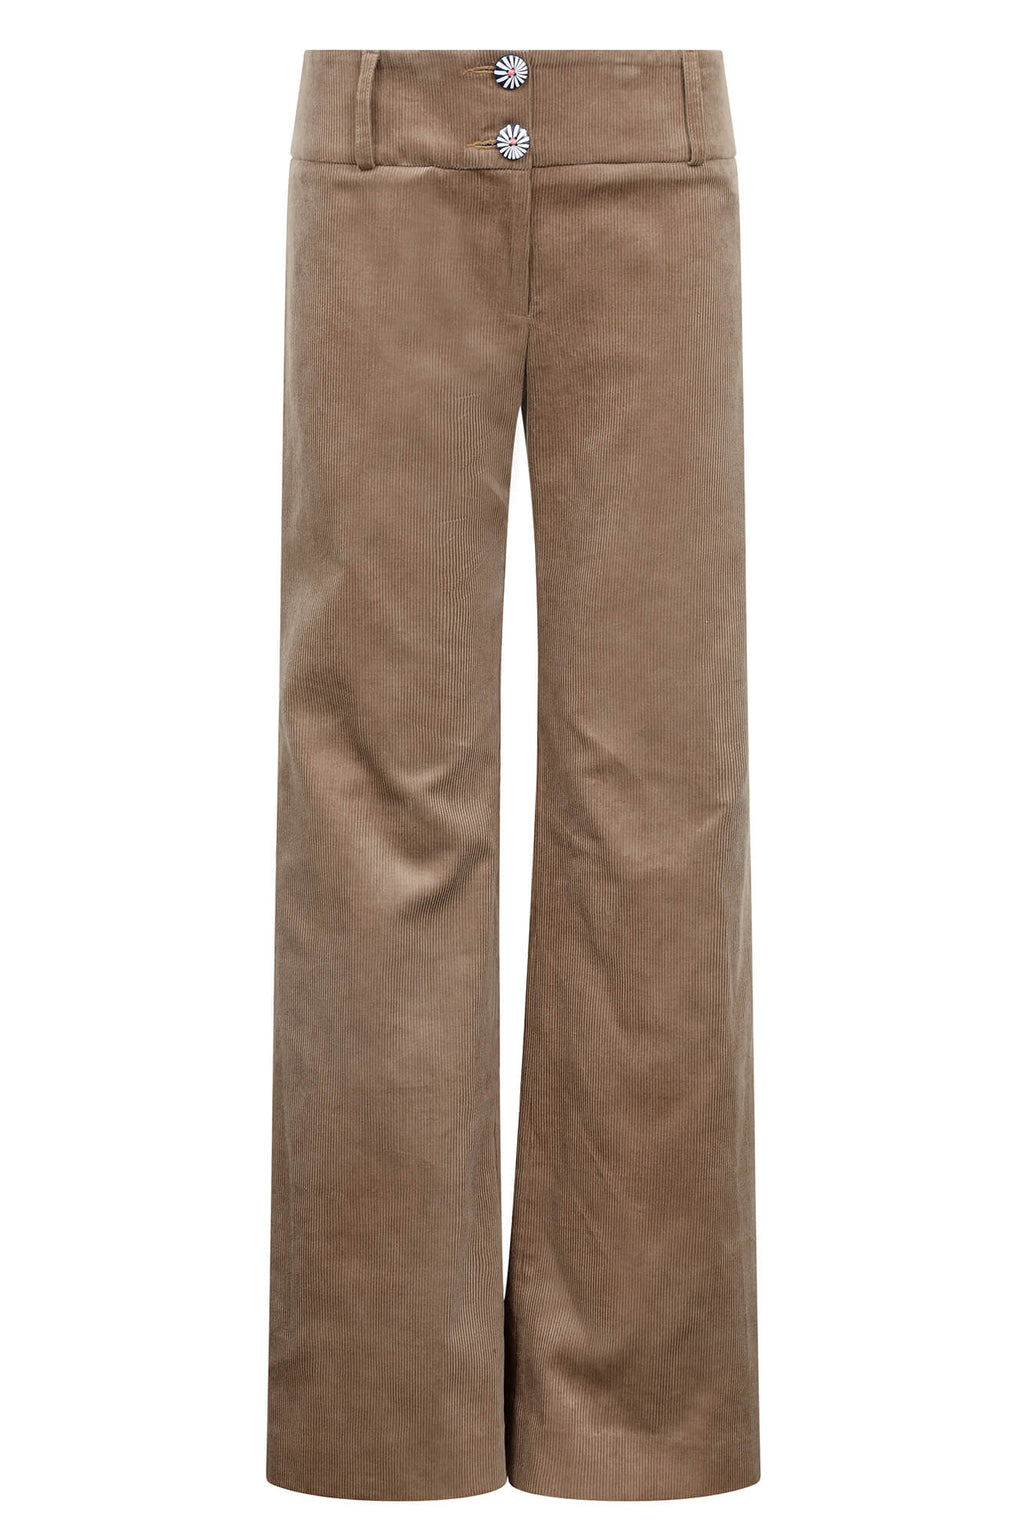 Women's cord trousers